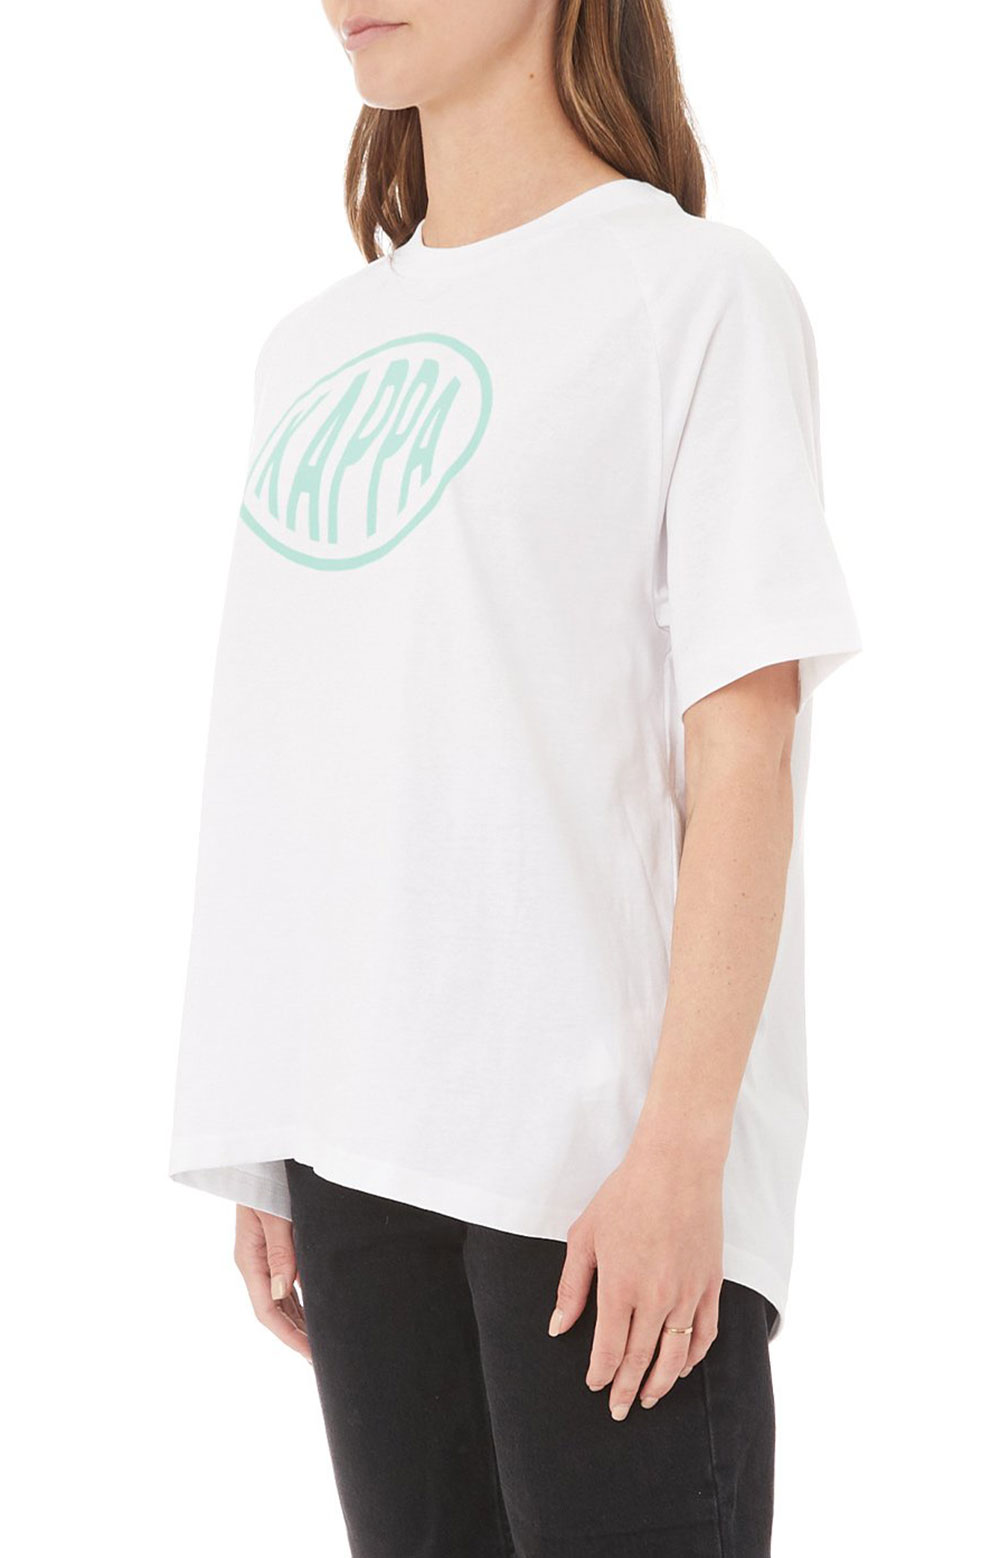 Authentic Pop Emasar Top - White/Green Spring  2